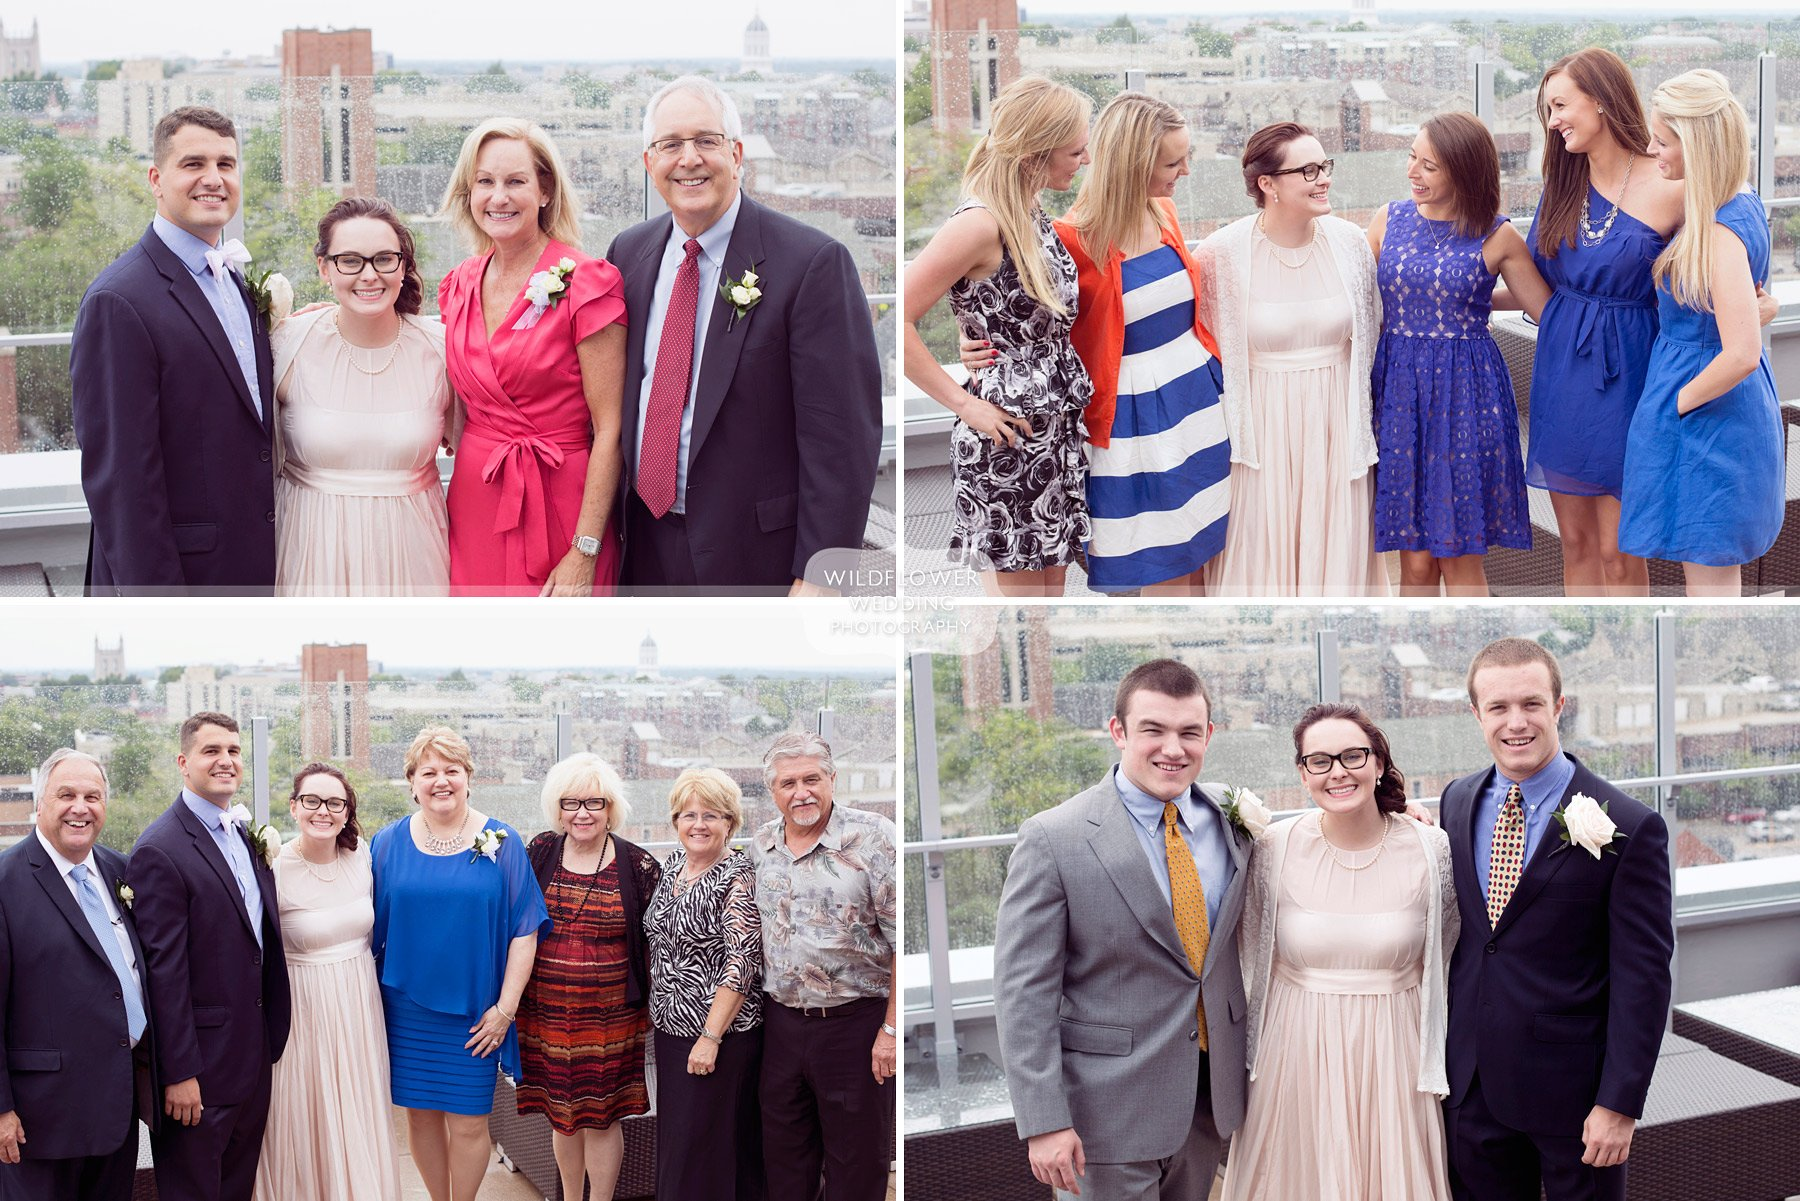 Outdoor Wedding Photography The Roof Columbia Mo